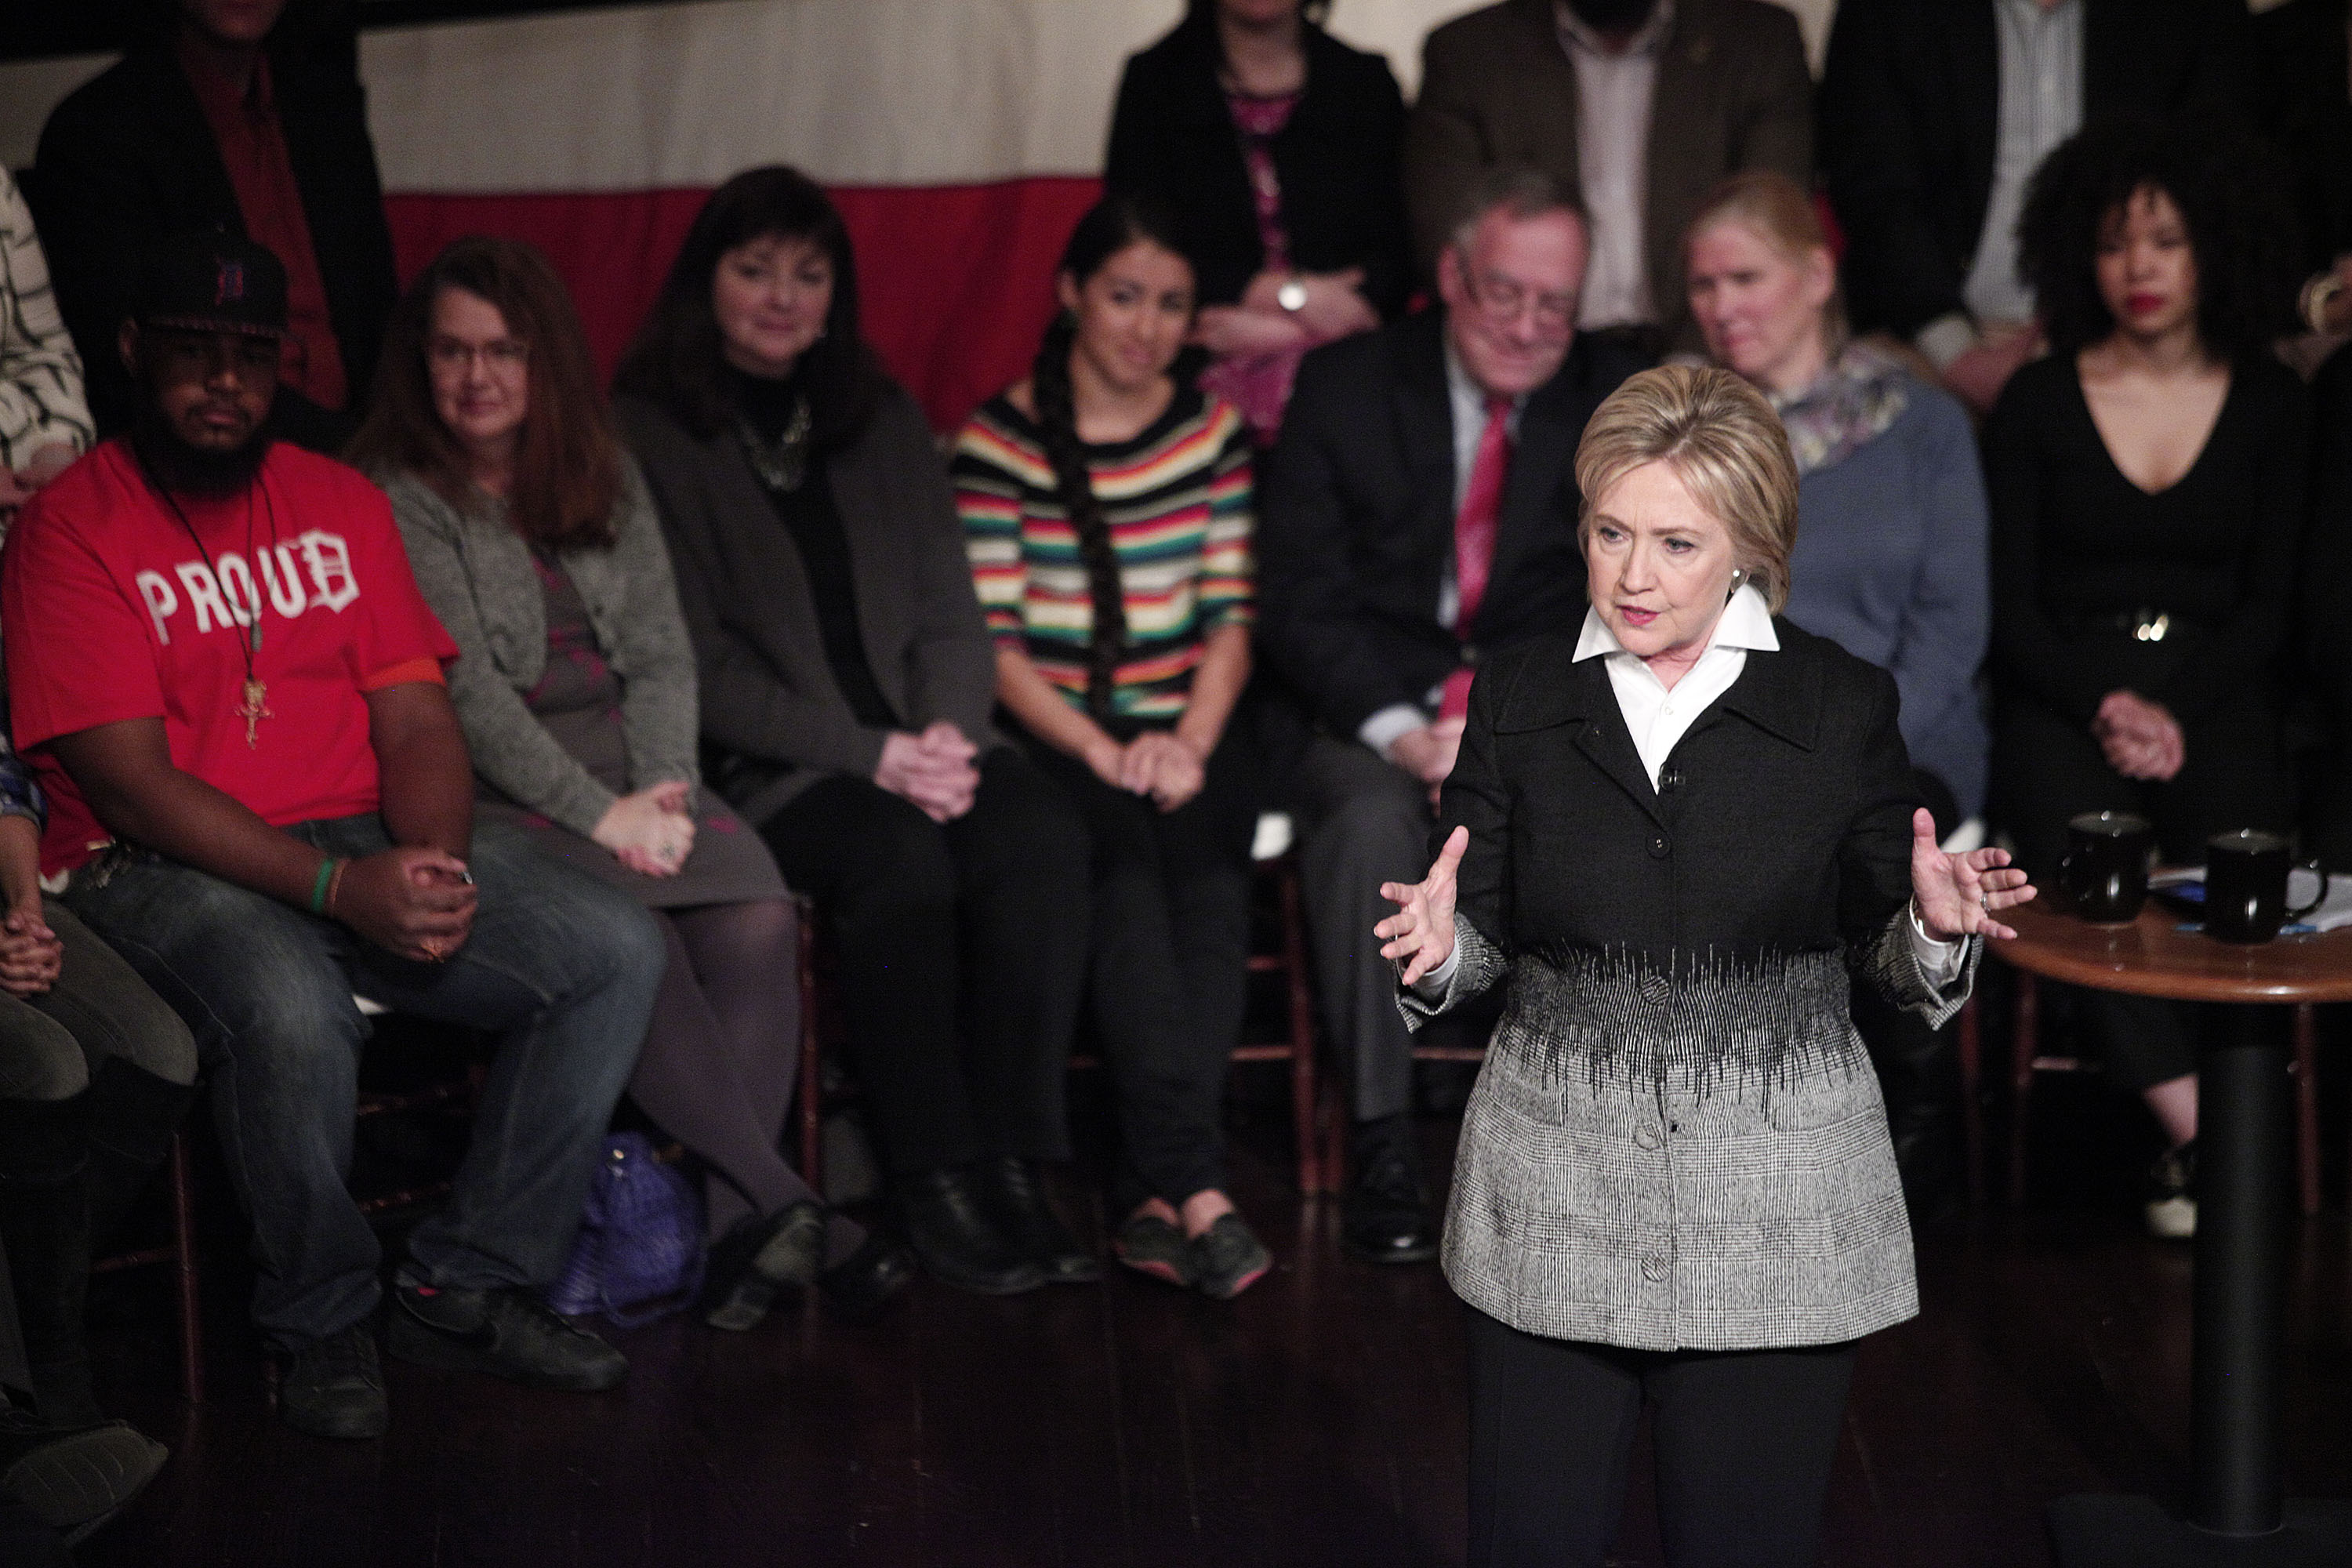 Democratic presidential candidate Hillary Clinton participates in a Fox News Democratic Town Hall March 7, 2016 in Detroit, Michigan.